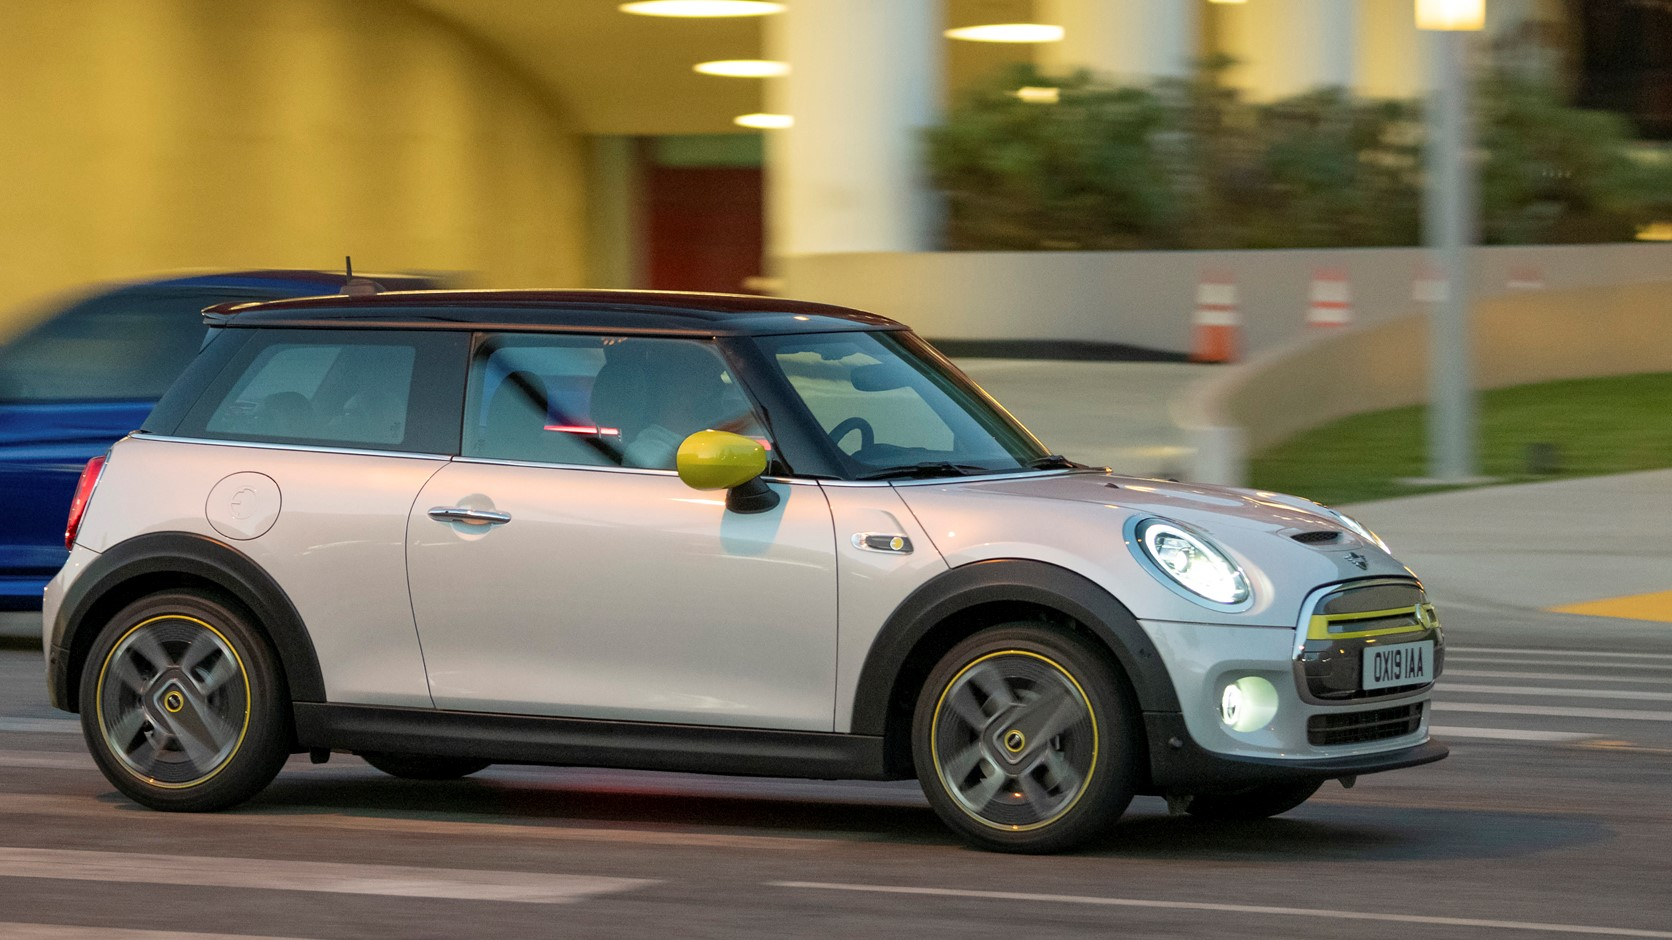 Mini cooper electric BMW